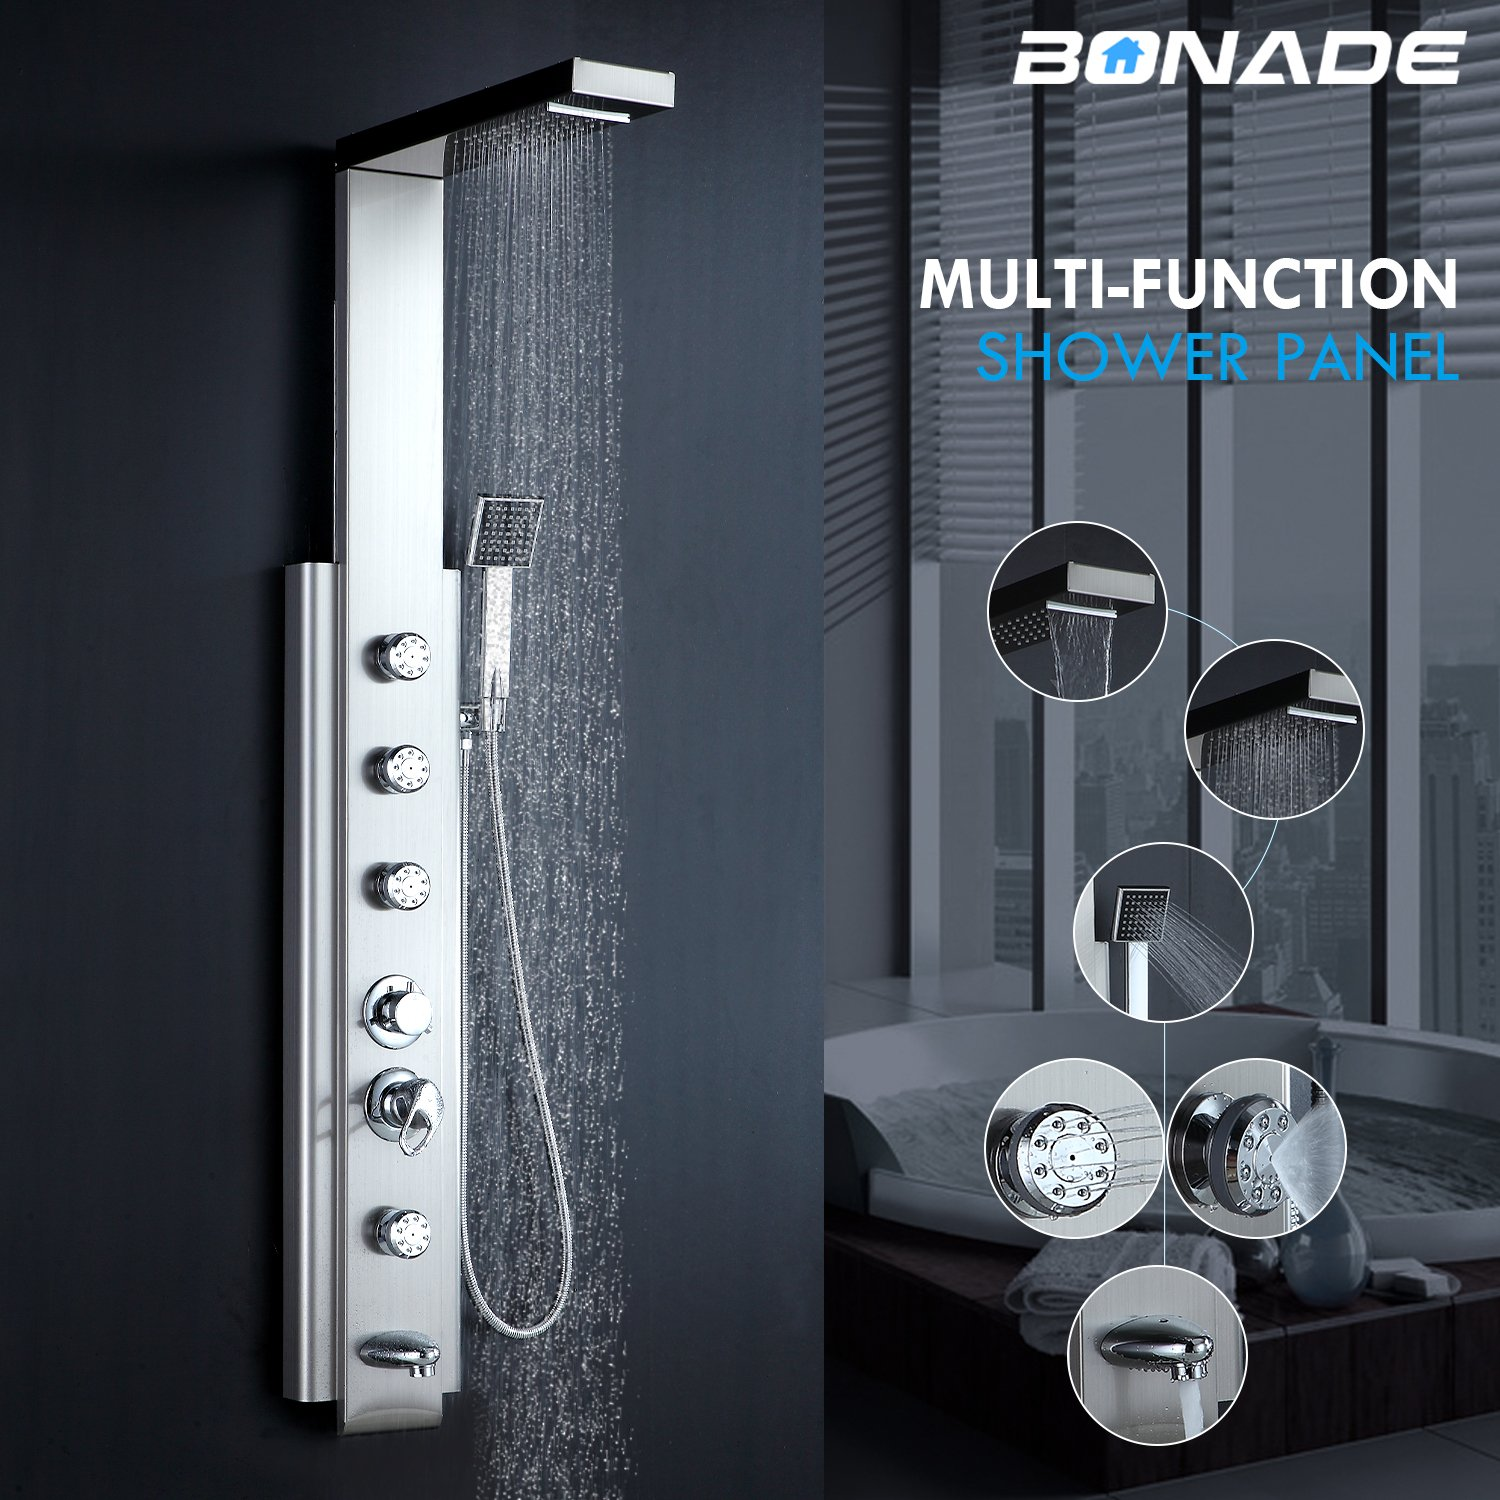 Bonade Stainless Steel Shower Panel with Waterfall, Massage Jets, 5 ...